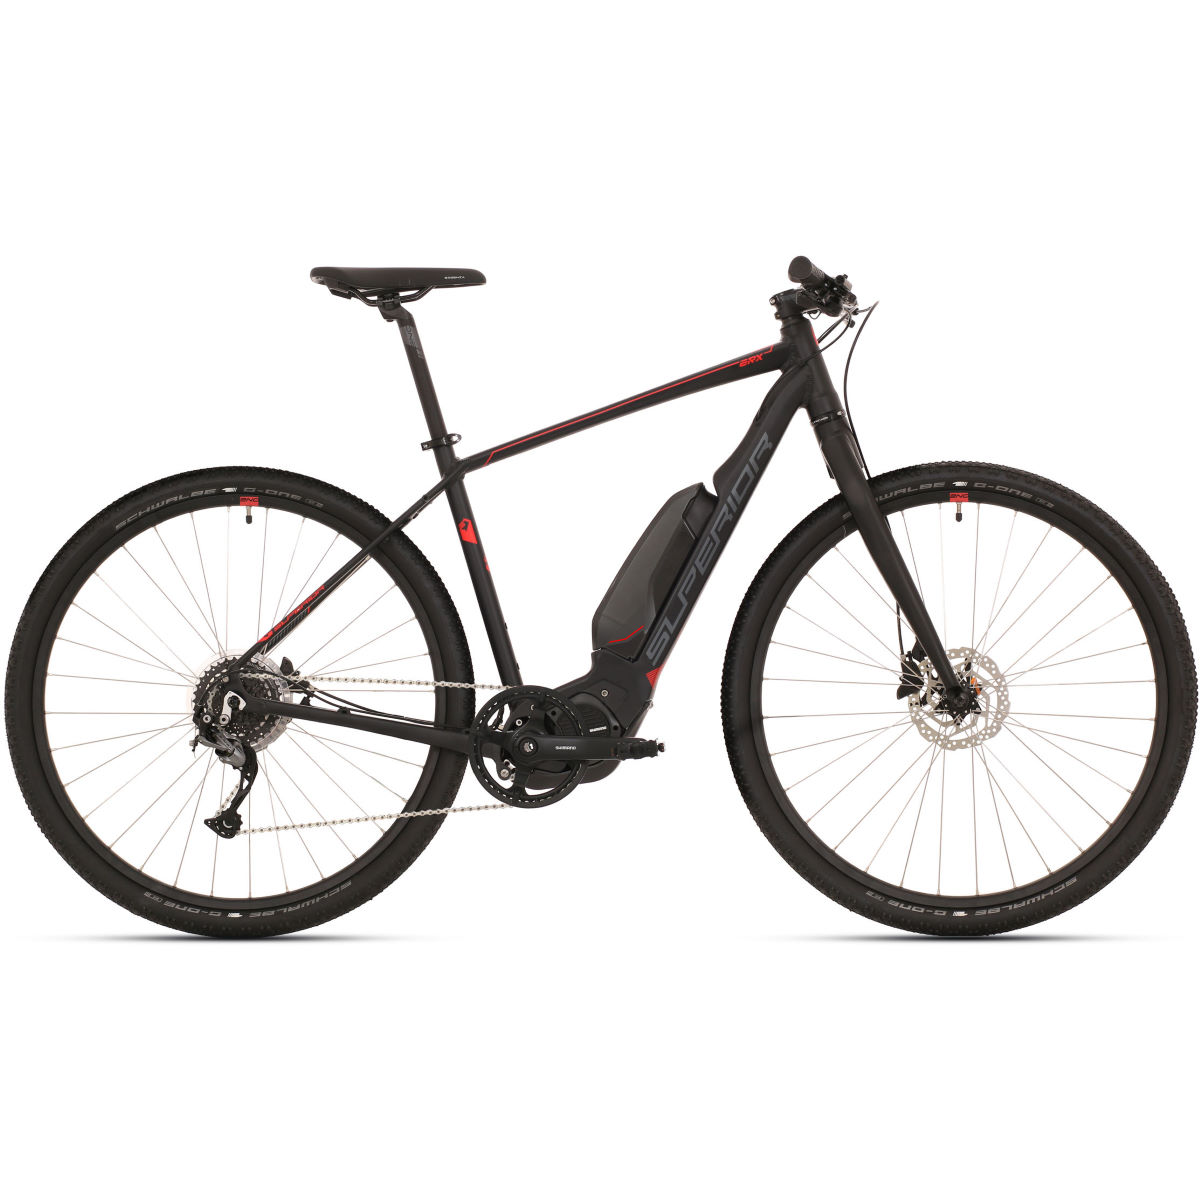 Superior Superior eRX 630 Urban E-Bike (2020)   Electric Urban Bikes